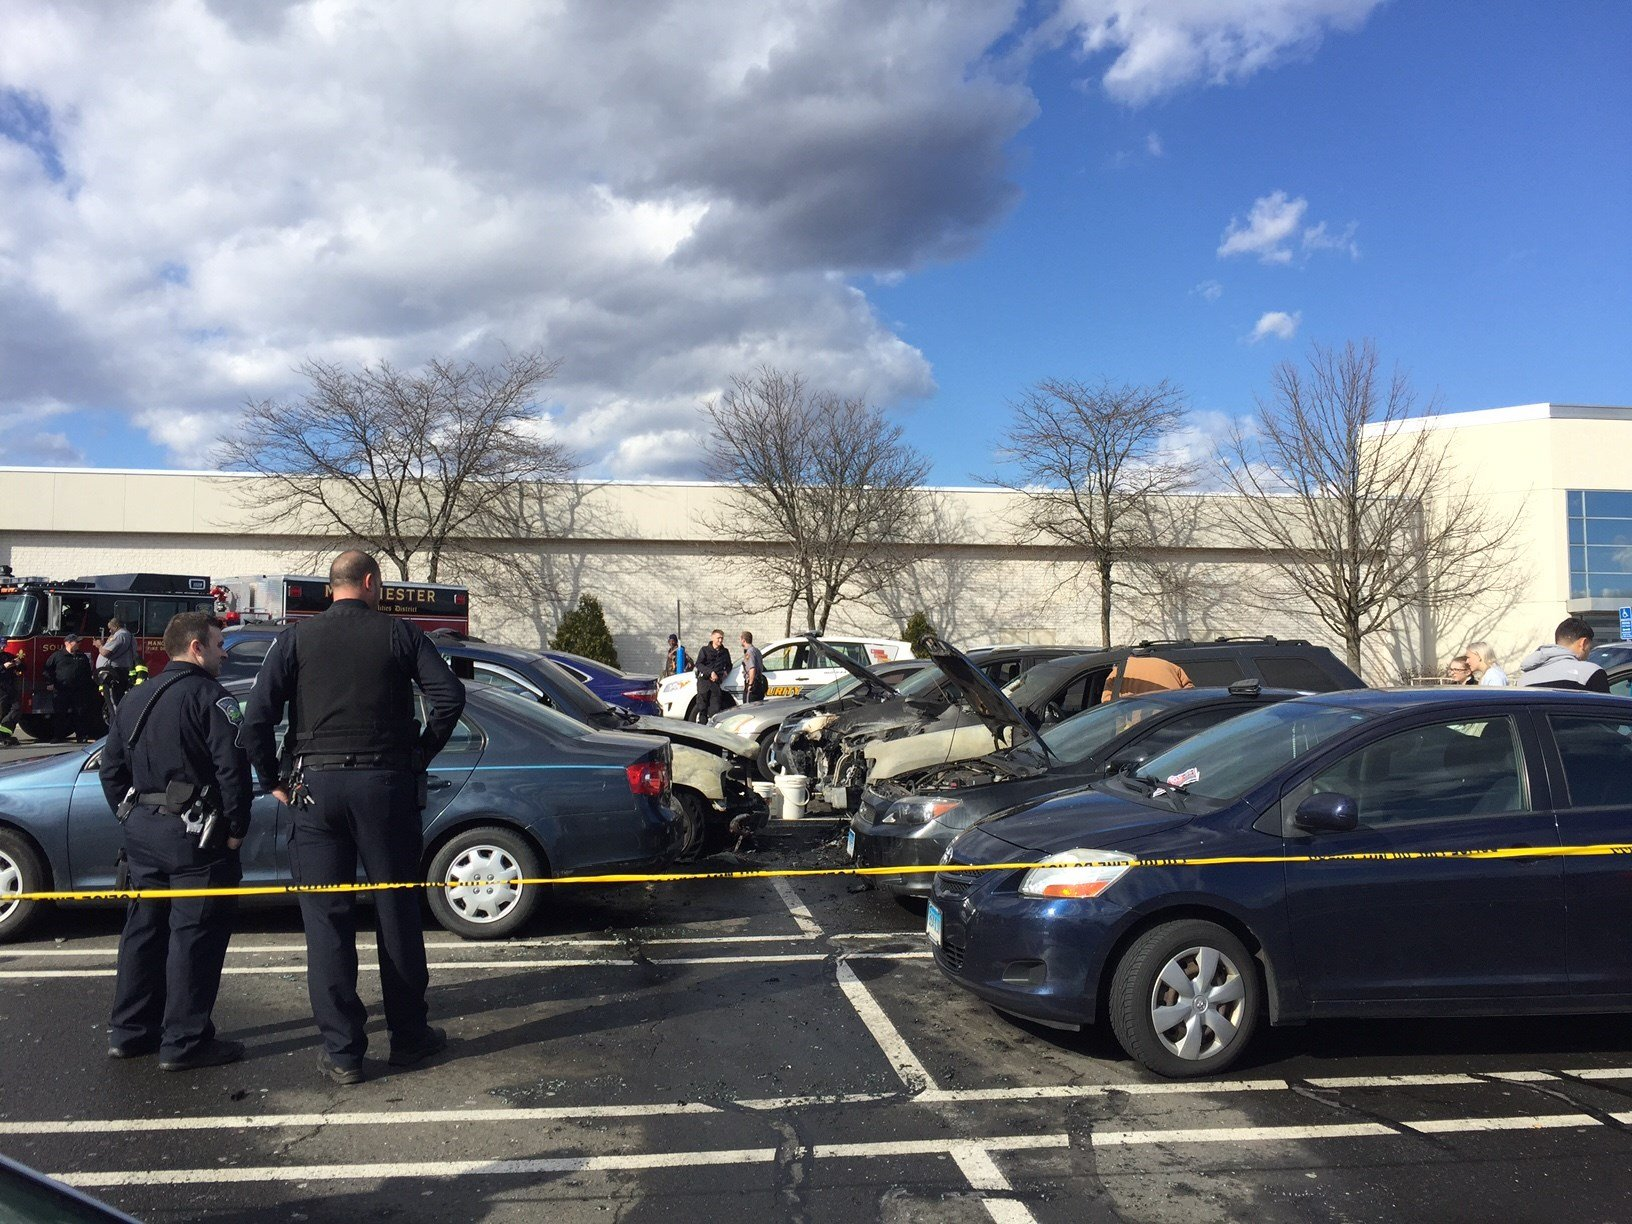 Police investigate the fire damage caused to several cars in the Manchester Buckland Hills parking lot. (WFSB)